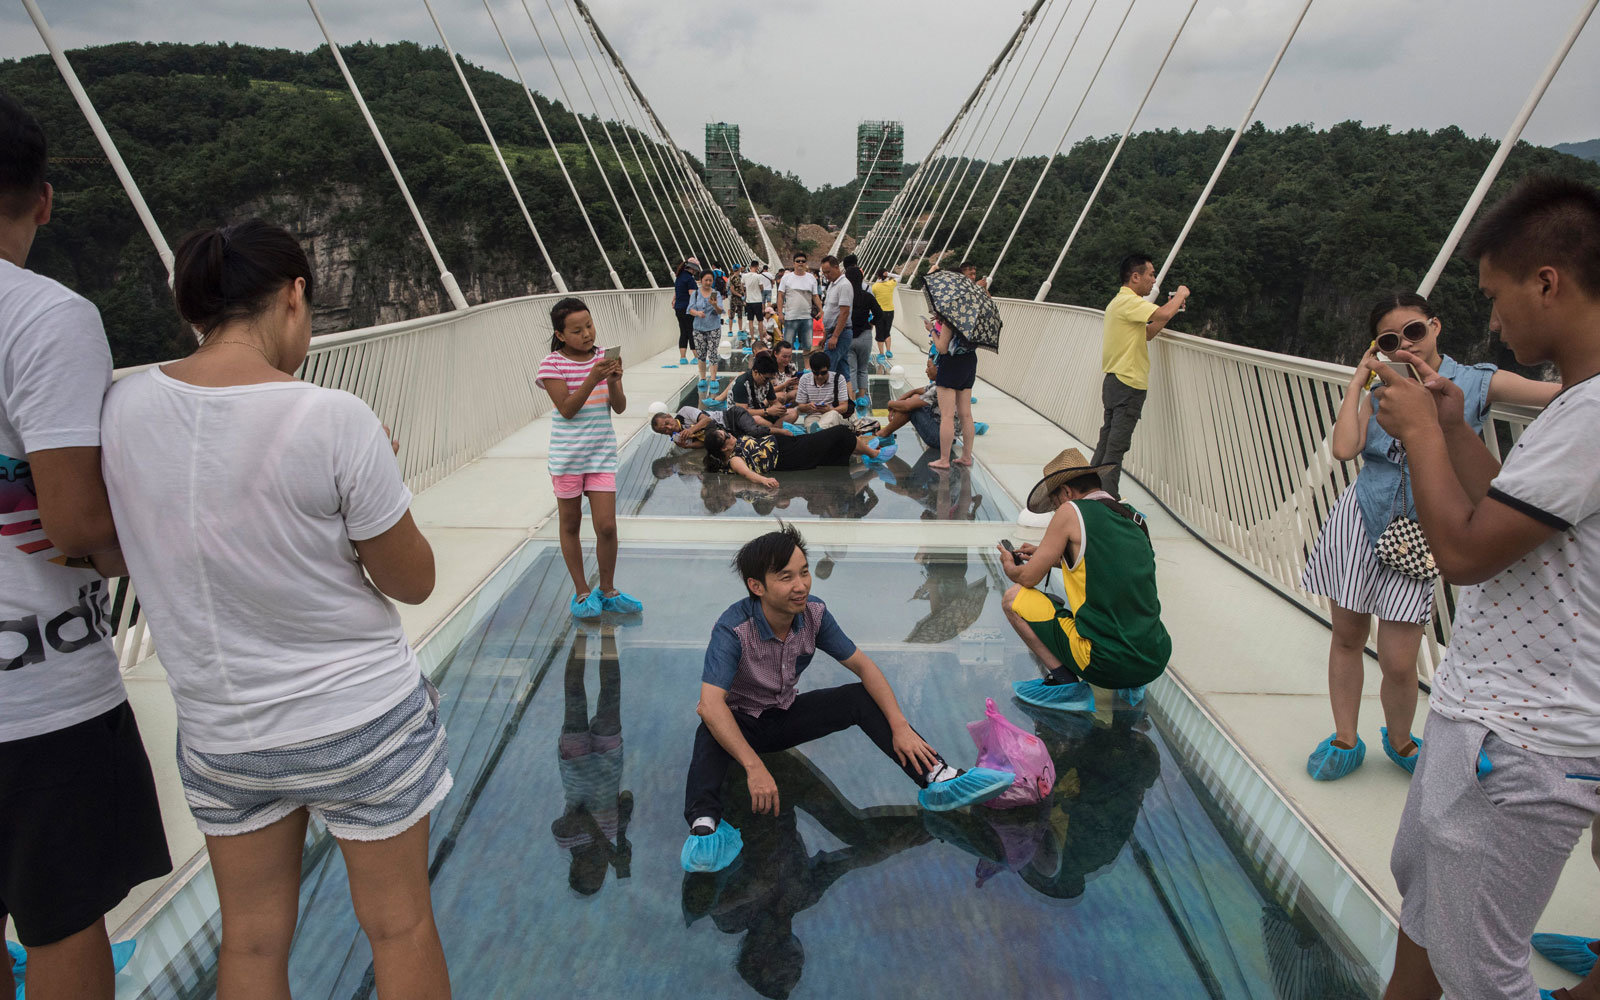 Tourists sit on the glass bridge in China.